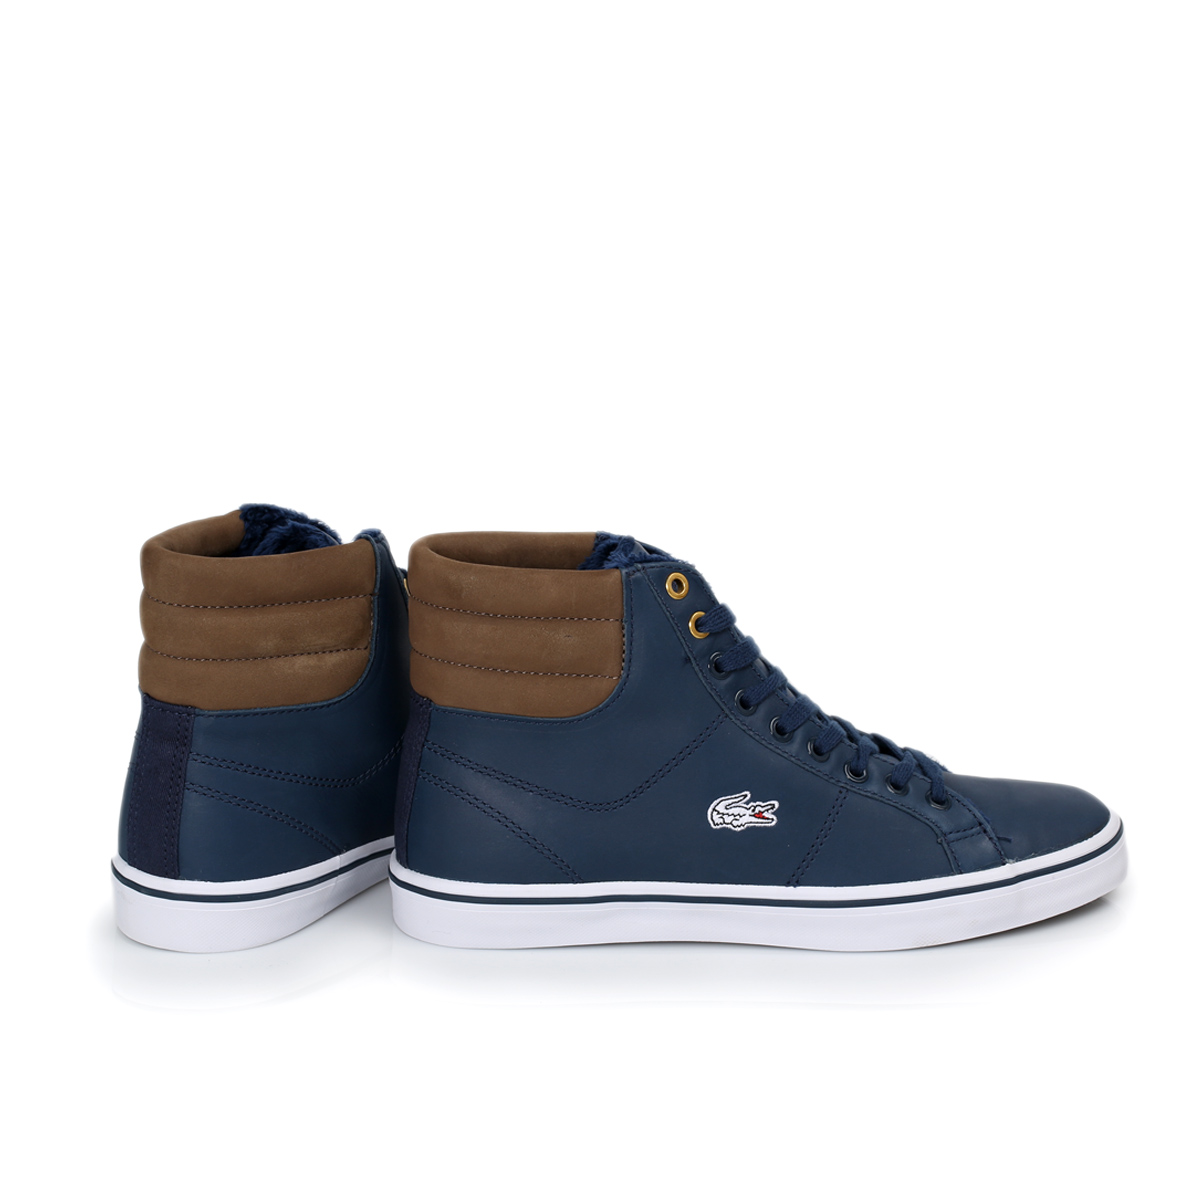 New  Shoes Sneakers Lacoste Footwear Lacoste Sneakers Lacoste Lacoste